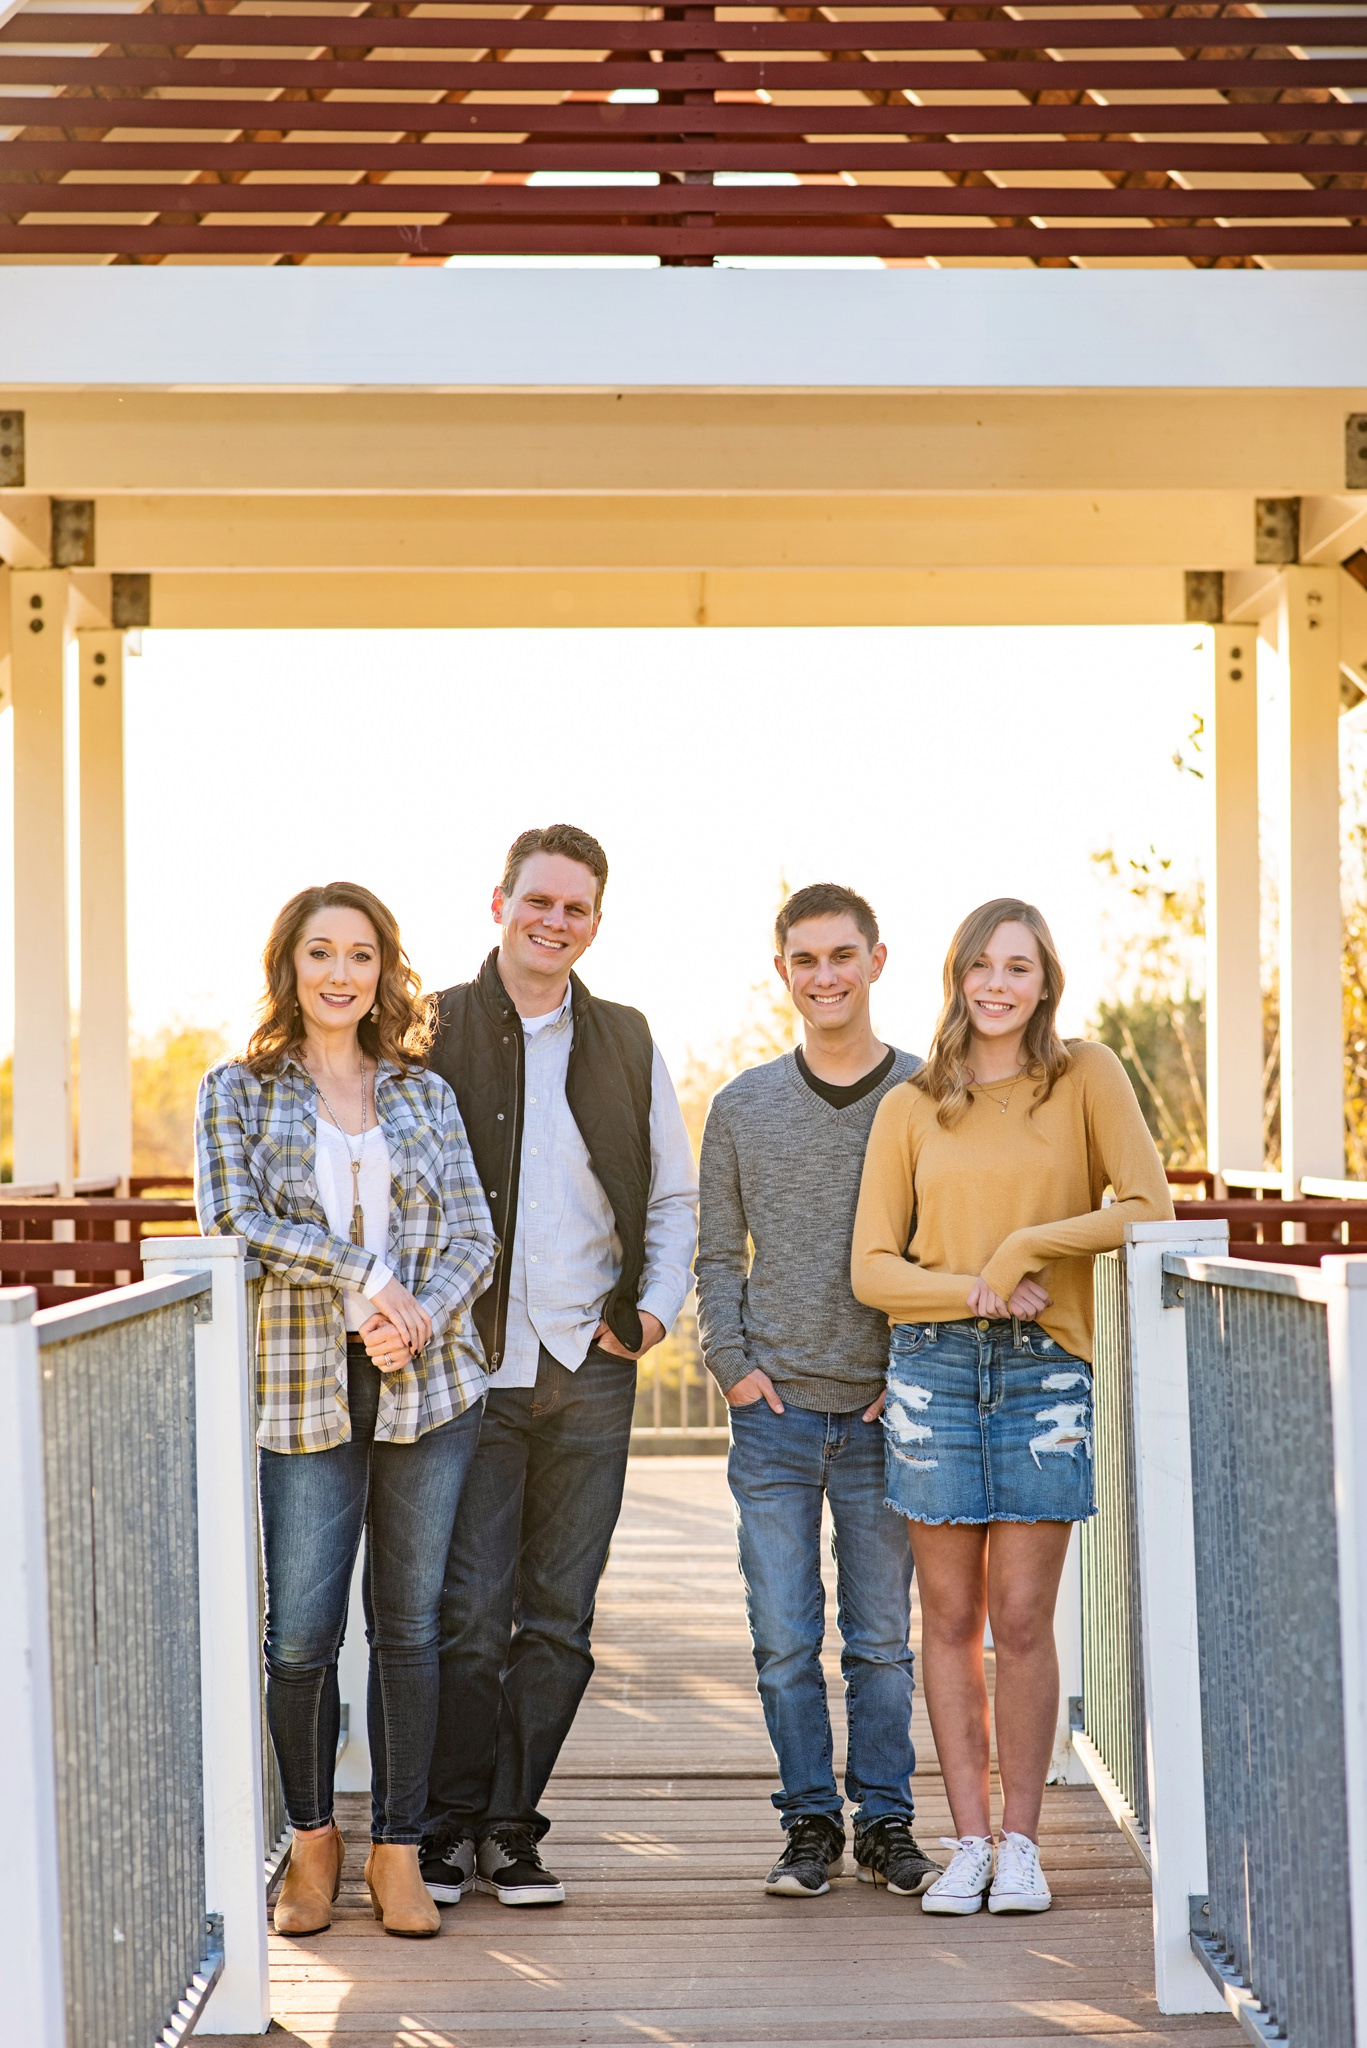 Wittwer-Family-Rotella-Photography-2018-7_WEB.jpg